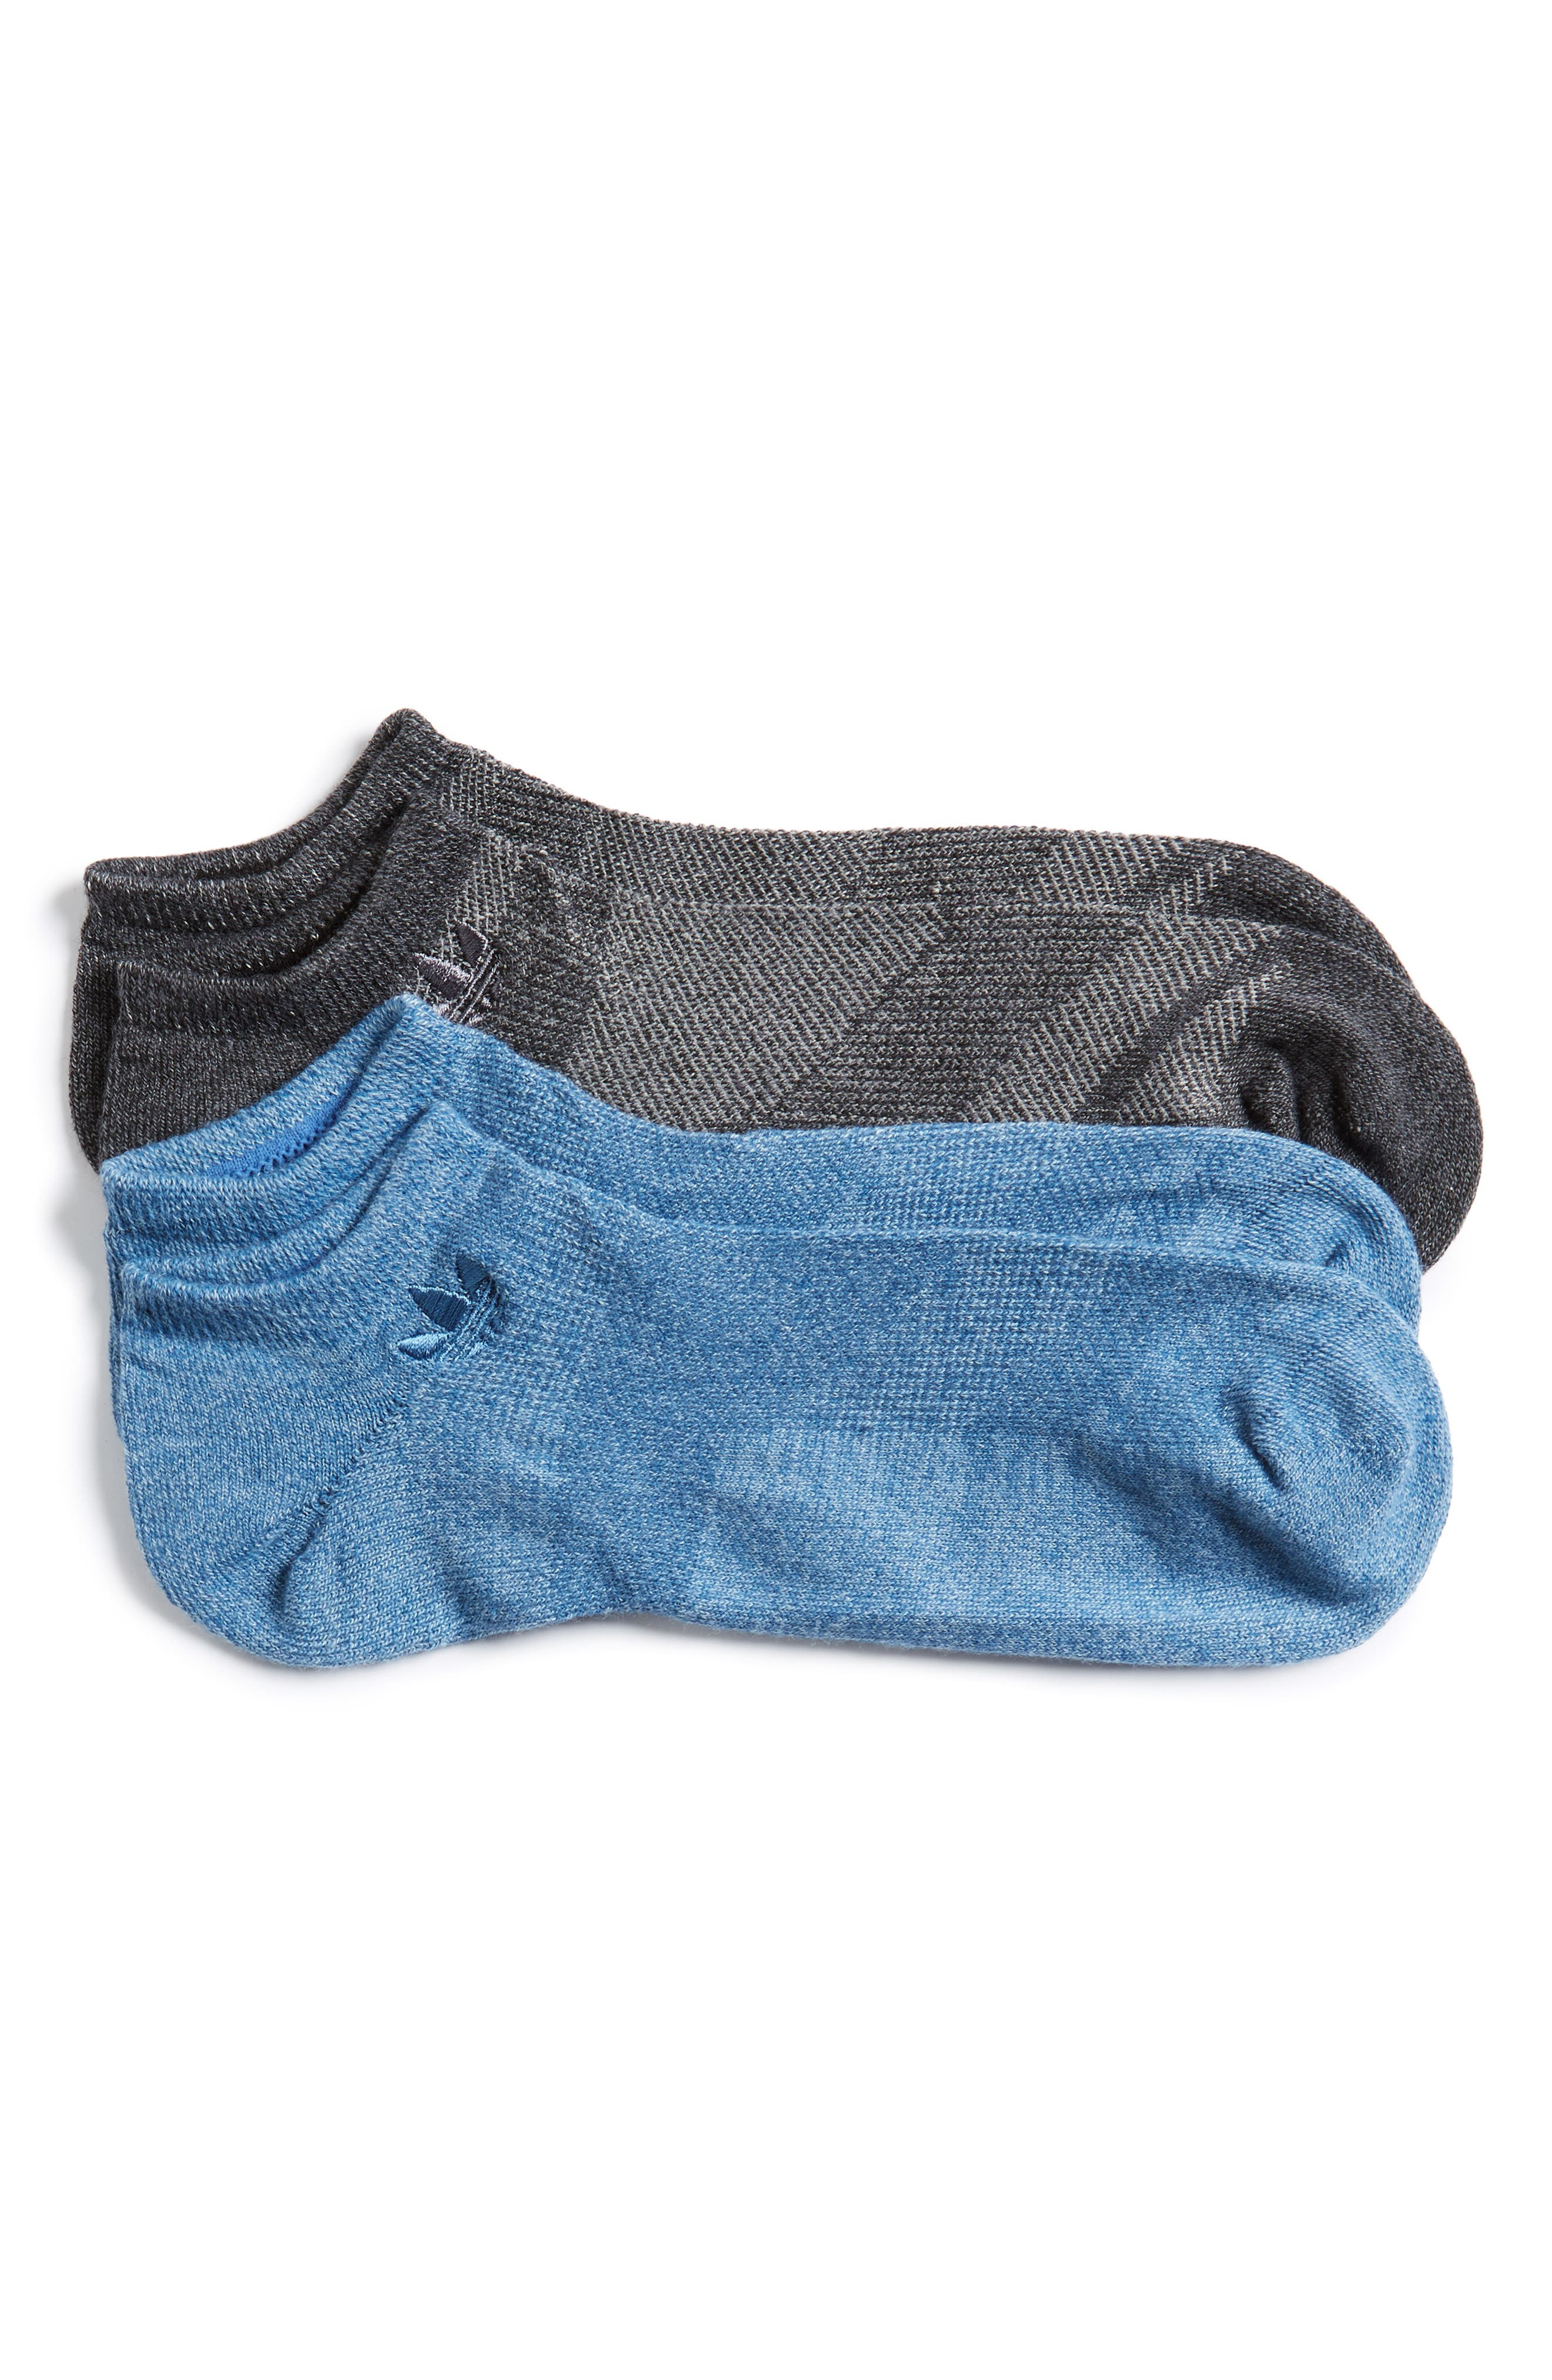 Prime Mesh 2-Pack No-Show Socks,                             Main thumbnail 1, color,                             Tactile Blue/ Black/ Onyx Marl